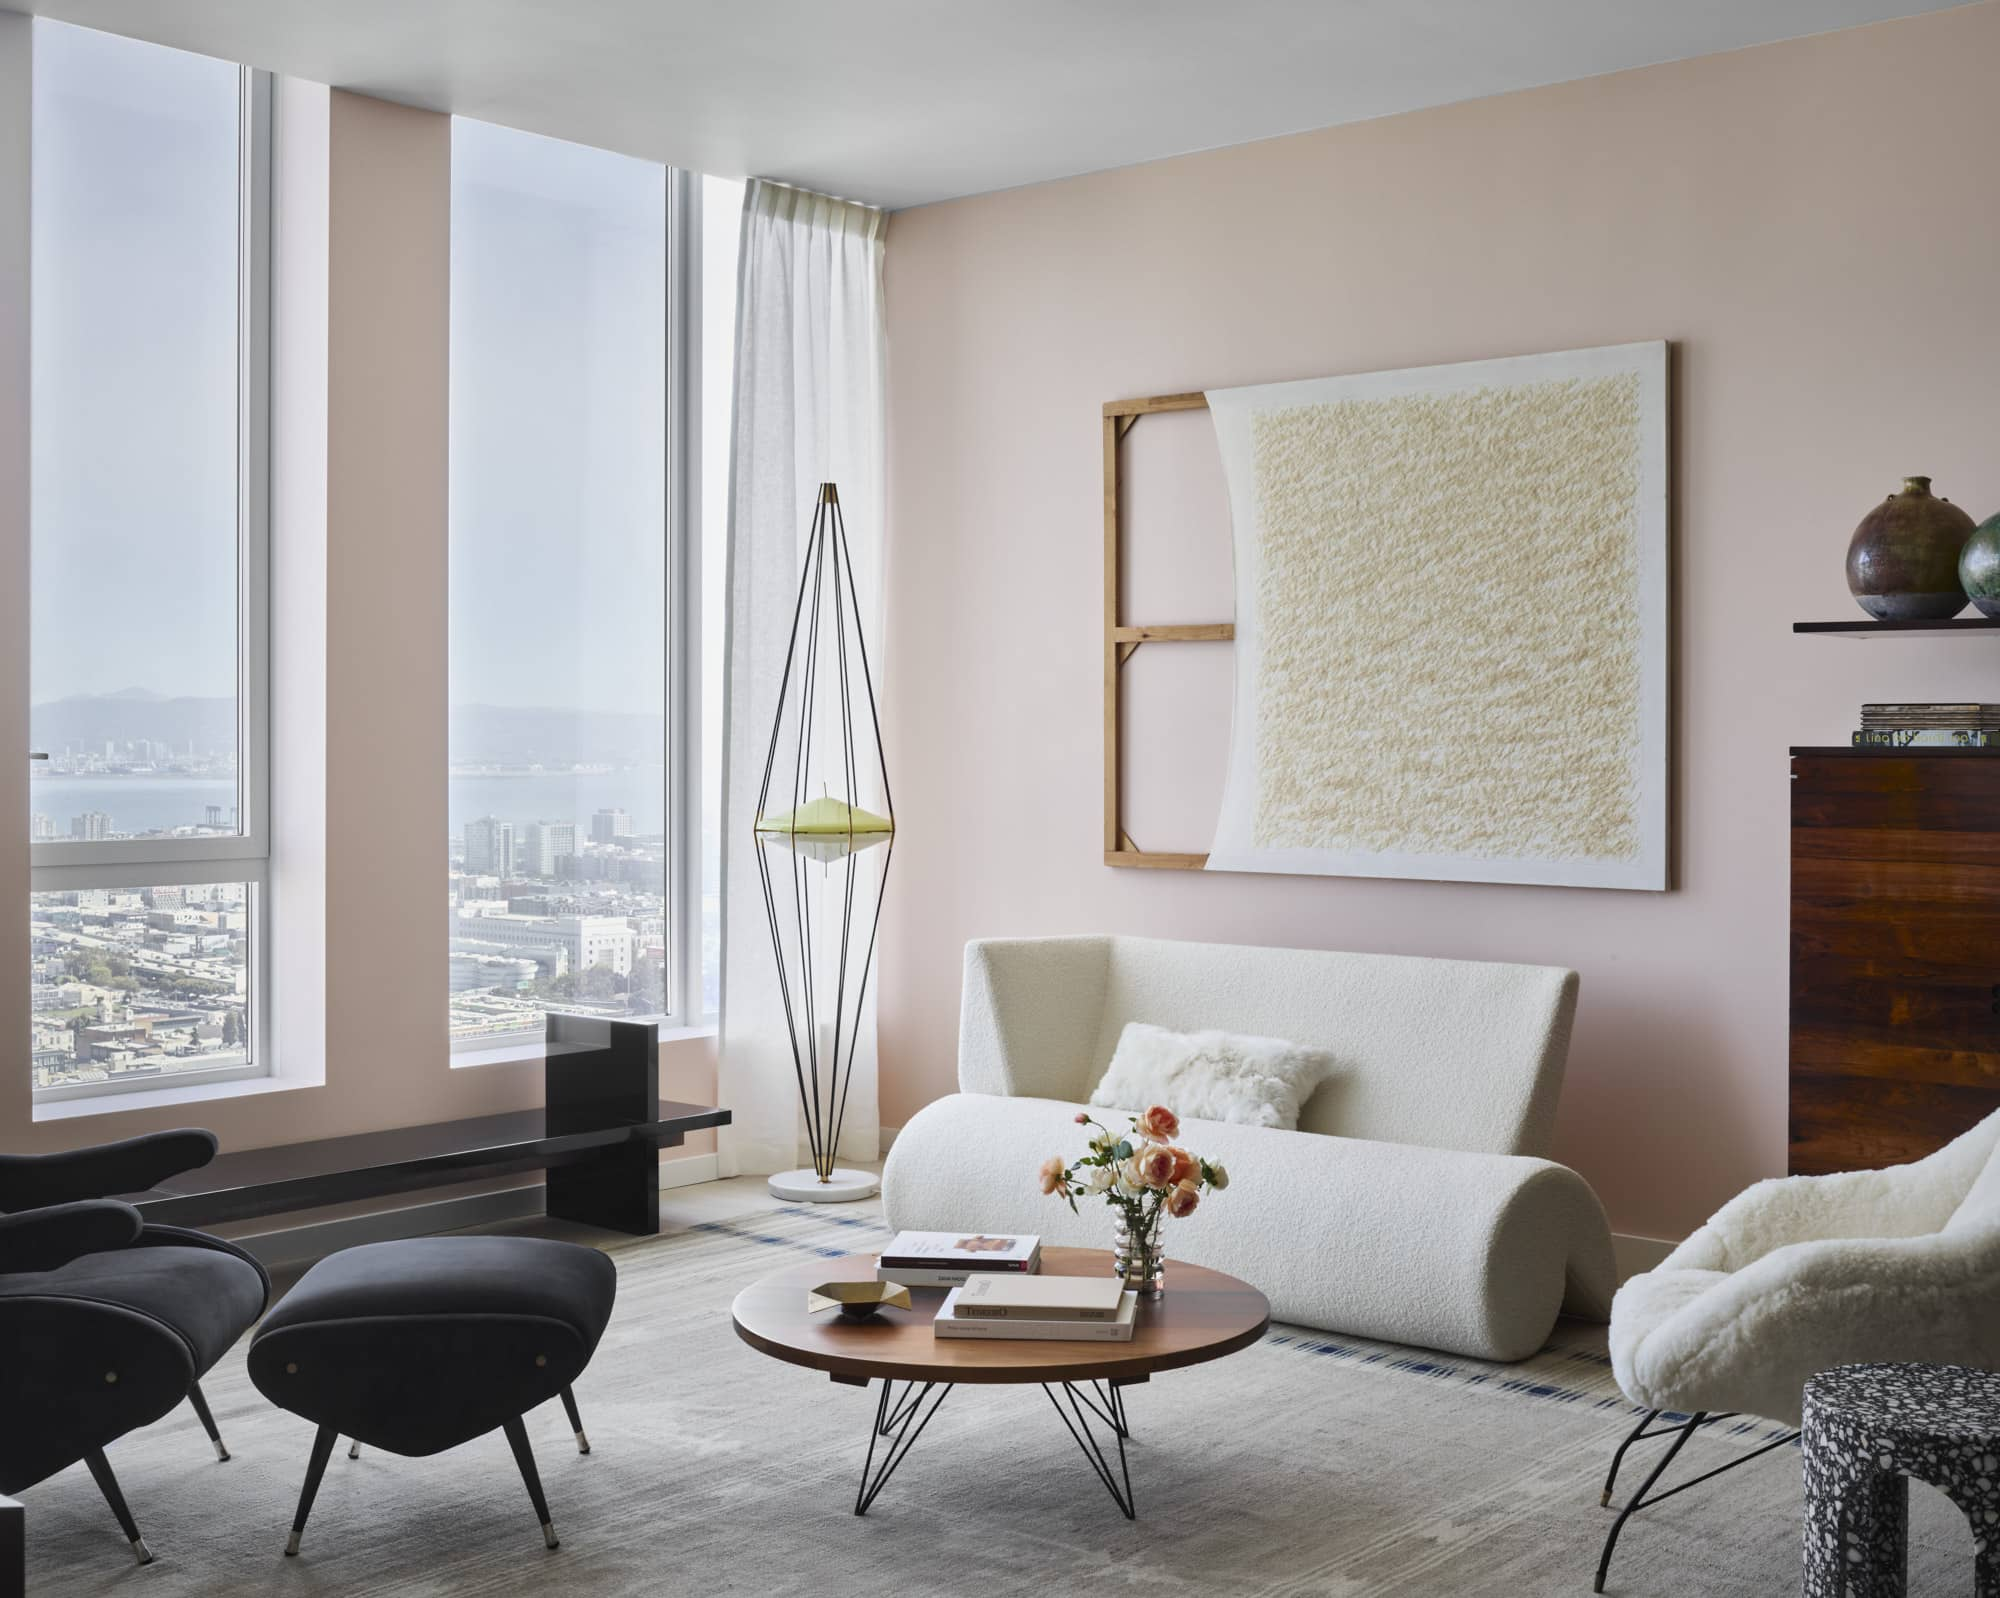 A white Martin Szekely sofa and an Acácio Gil Borsoi jacaranda coffee table in the living room of Gabriel & Guillaume's staged apartment at Fifteen Fifty in San Francisco